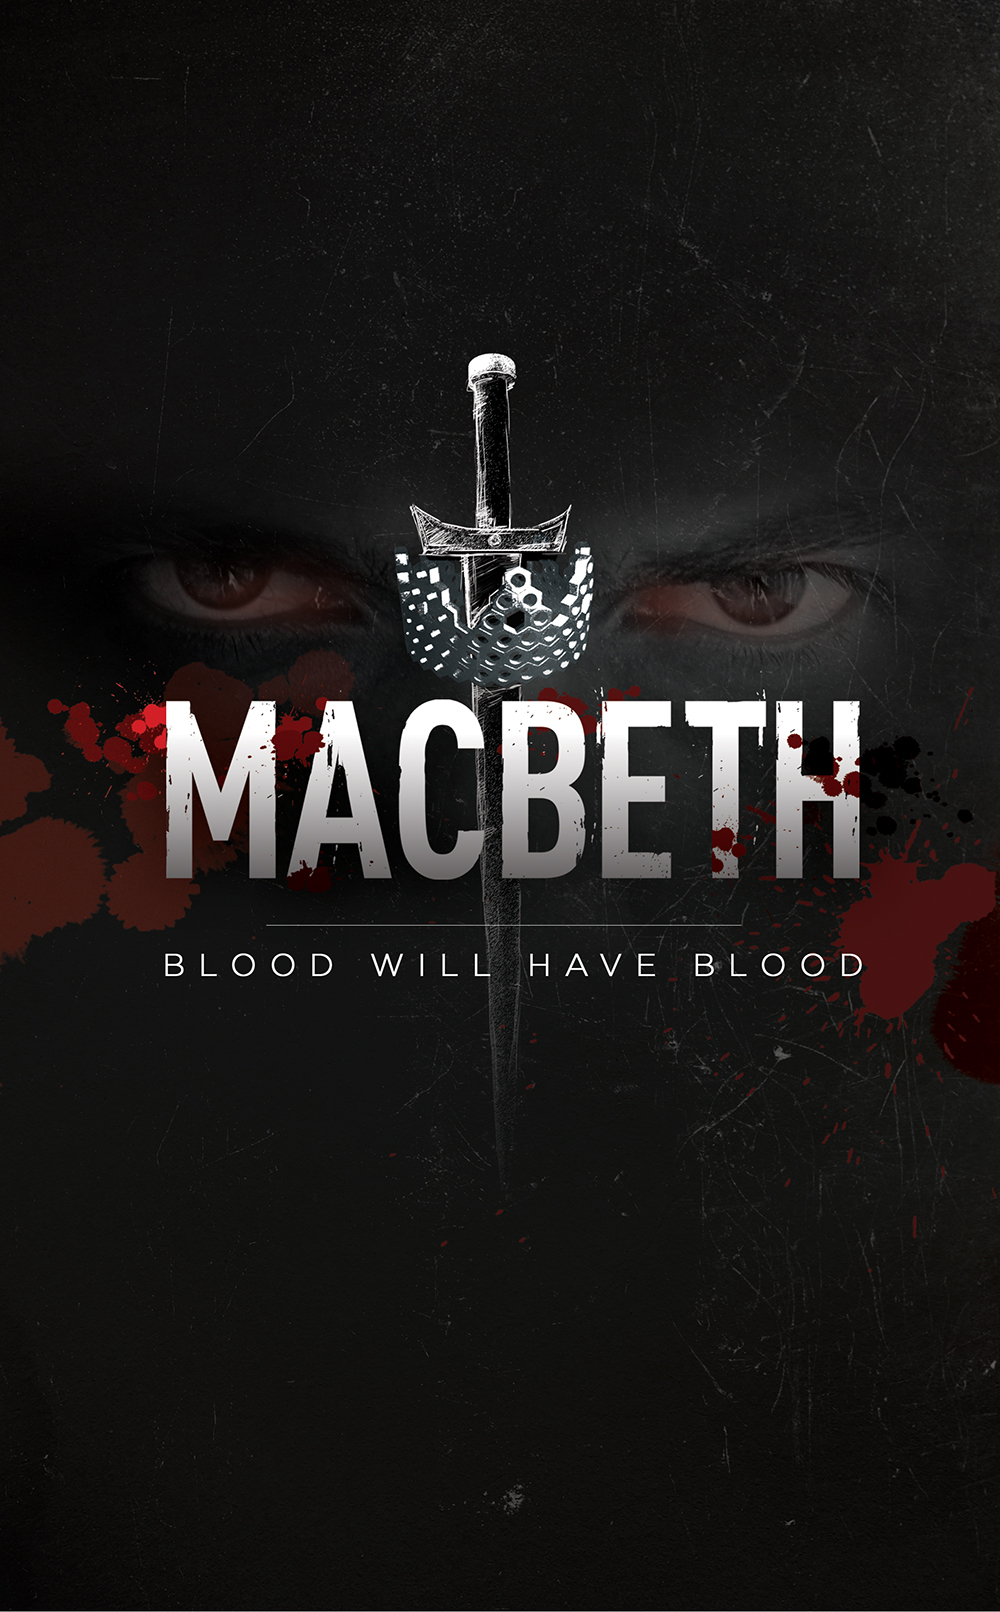 ambition in macbeth the soliloquy The destruction that comes from unchecked ambition will continue to be explored as one of the play's themes as the soliloquy ends, macbeth seems to resolve not.